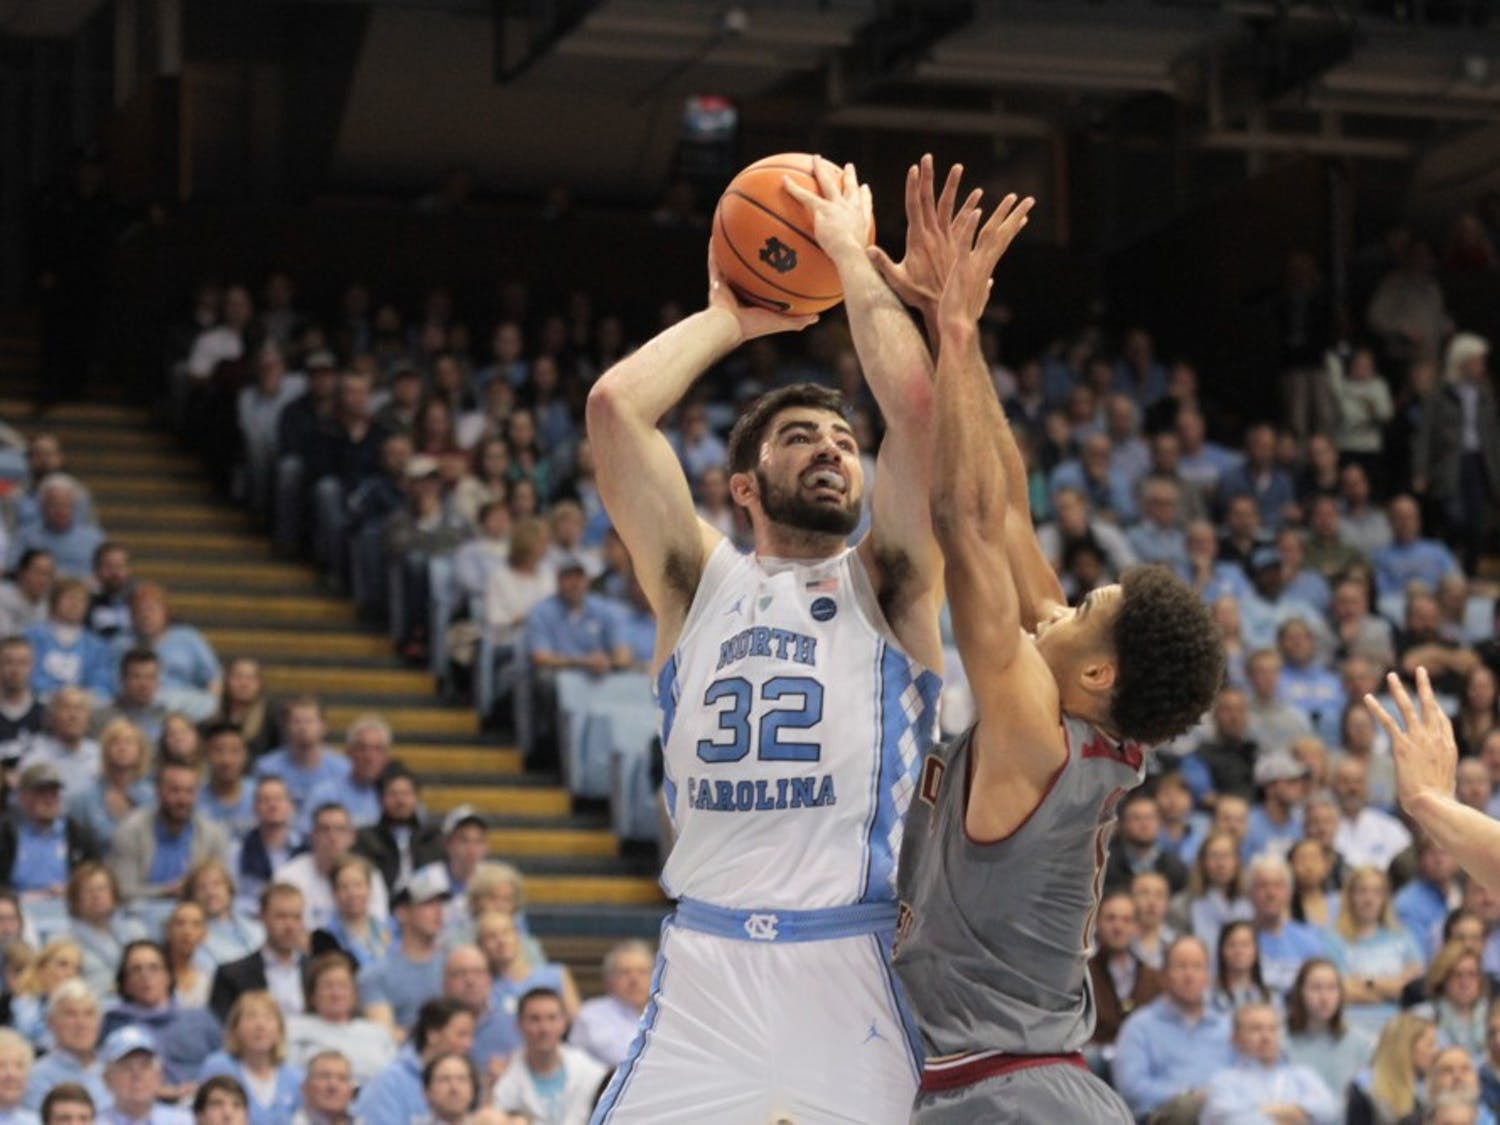 Forward Luke Maye (32) takes a shot against Boston College on Dec. 9 in the Smith Center. Maye finished with career highs in points (32) and rebounds (18).